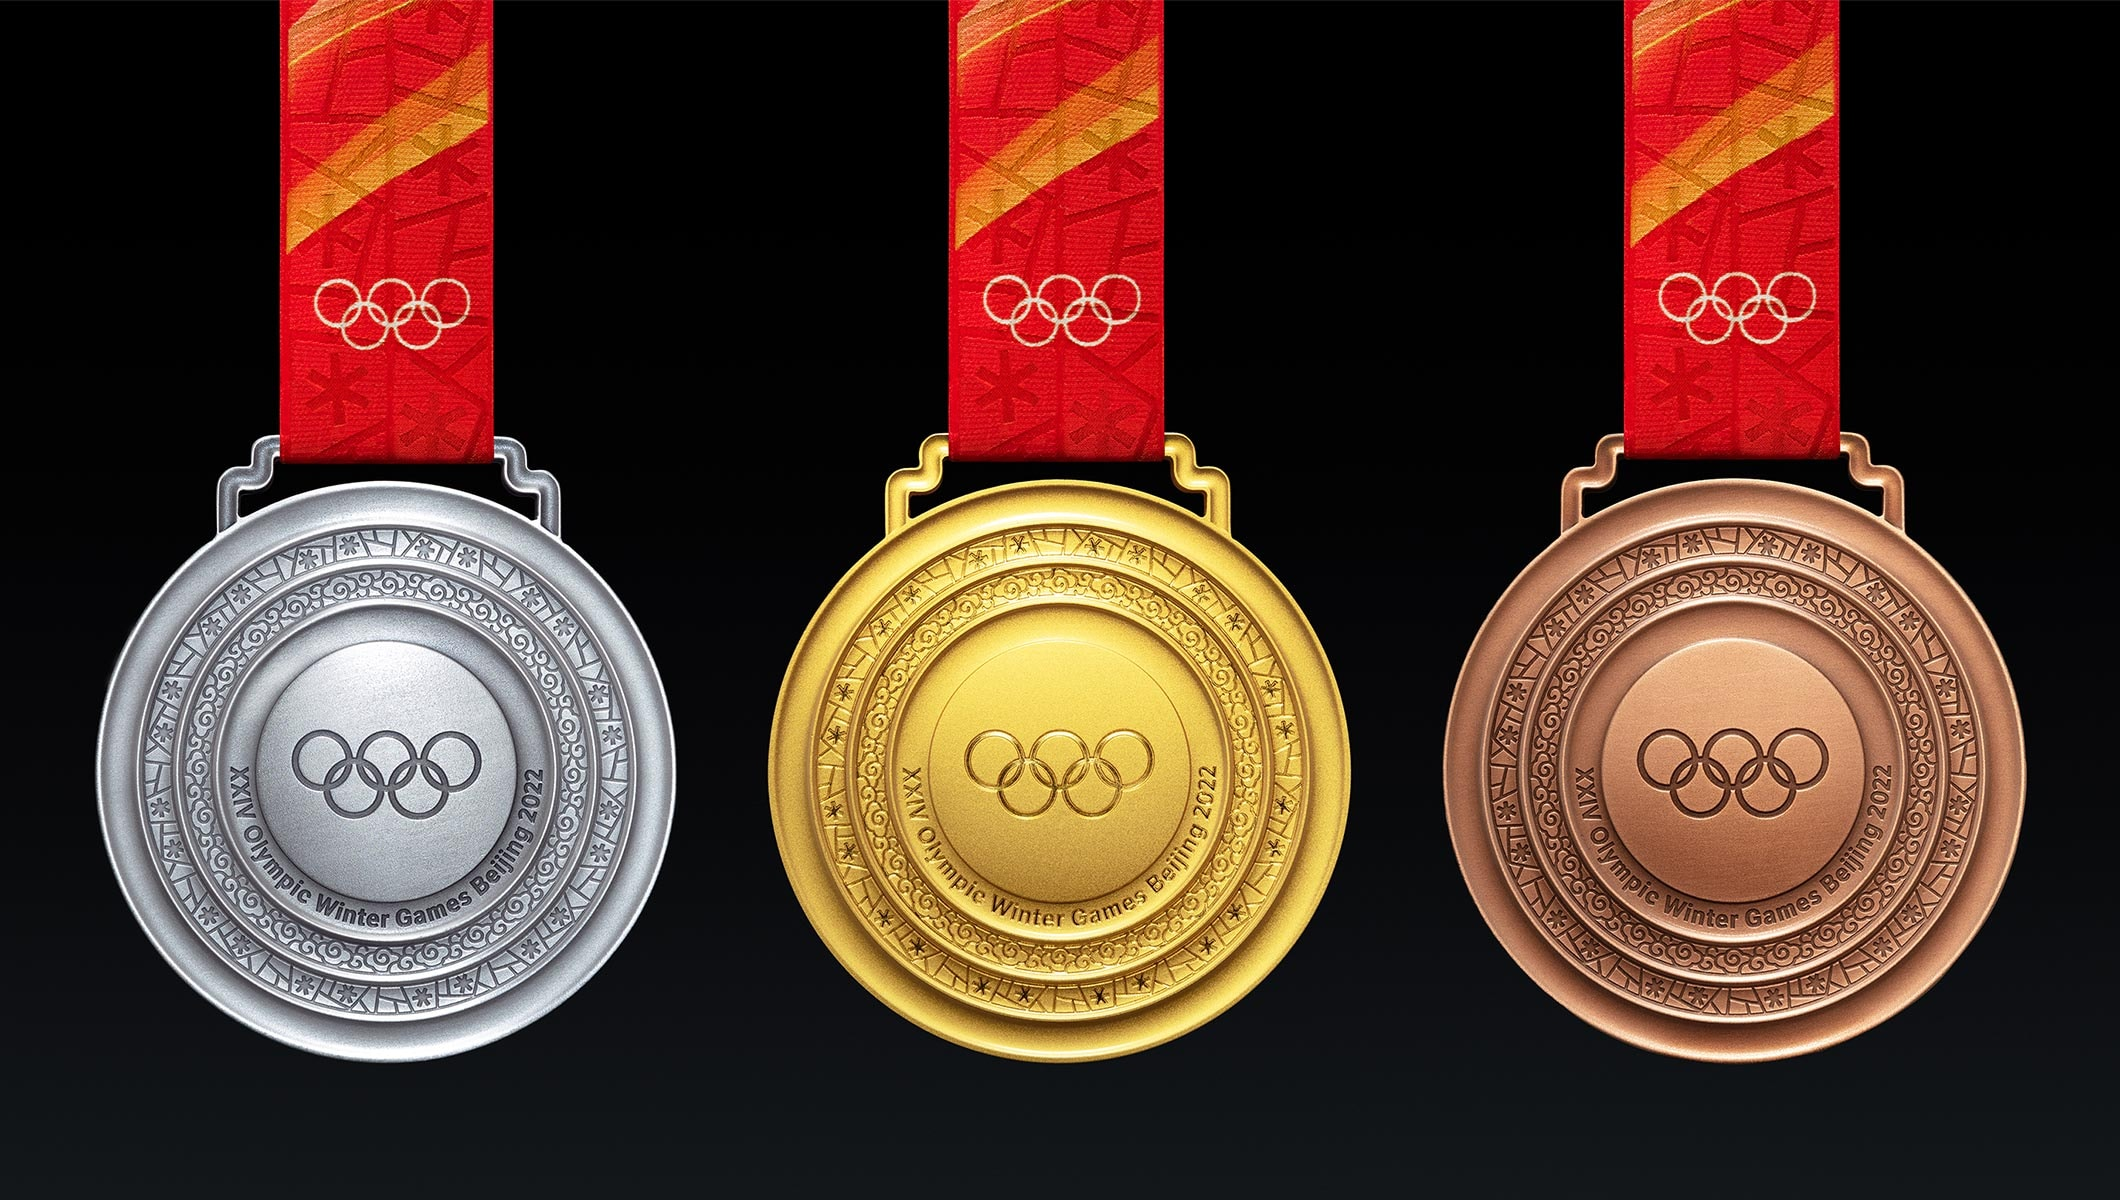 The front designs of the Olympic Winter Games Beijing 2022 medals